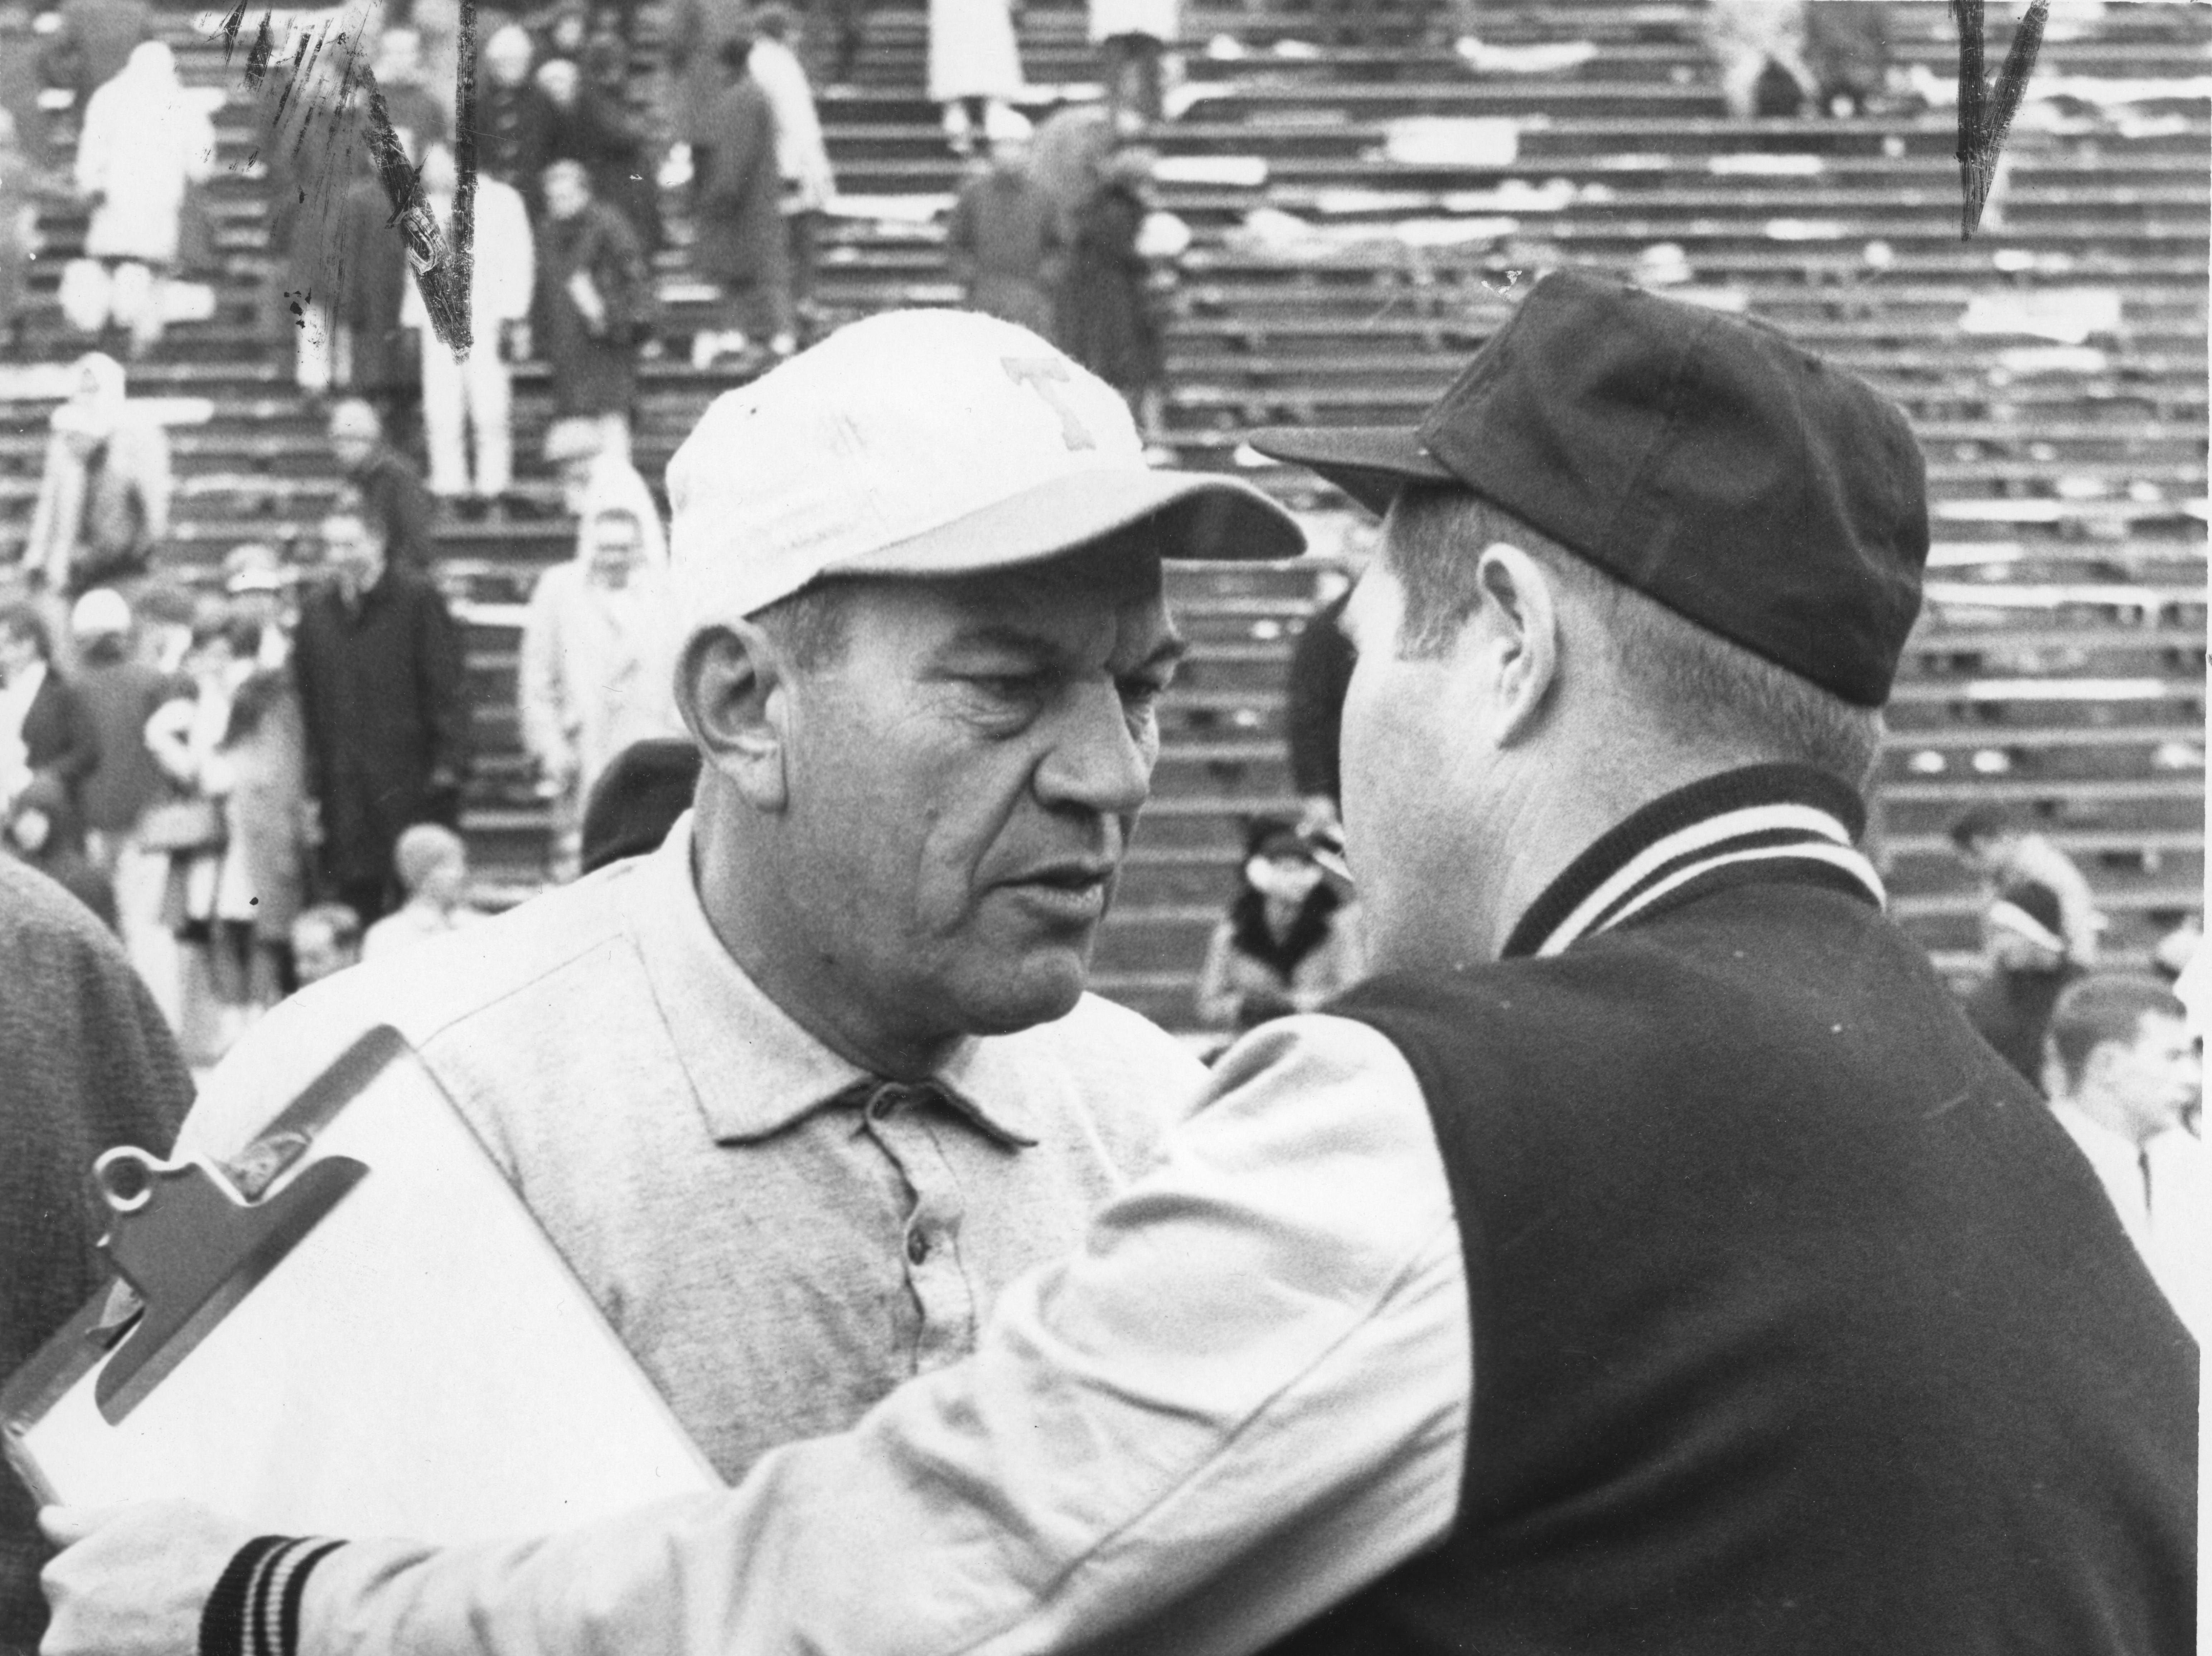 Jim McDonald, Tennessee Head Coach, after a game against Vanderbilt in 1963.